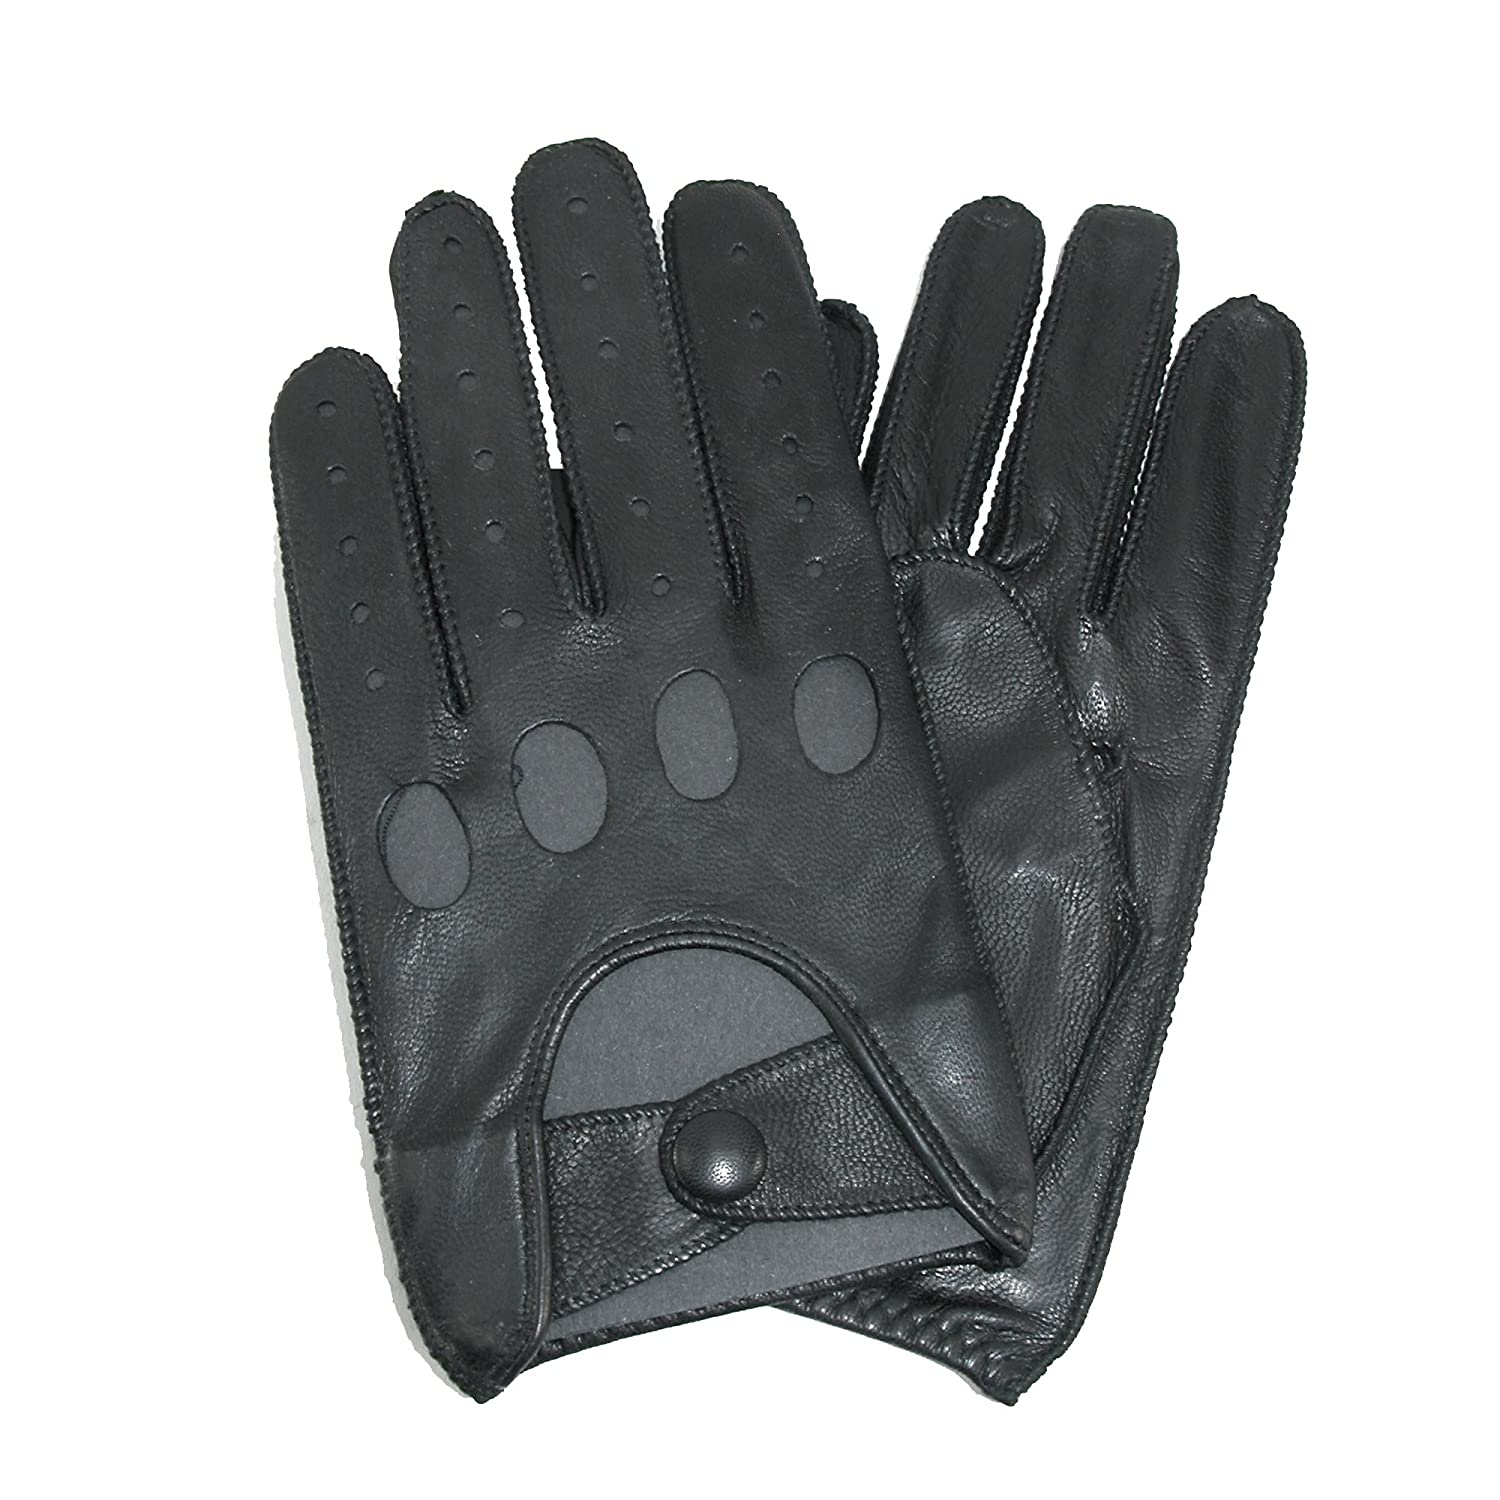 Driving gloves isotoner - Isotoner Men S Smooth Leather Driving Glove With Covered Snap Brown Medium At Amazon Men S Clothing Store Cold Weather Gloves